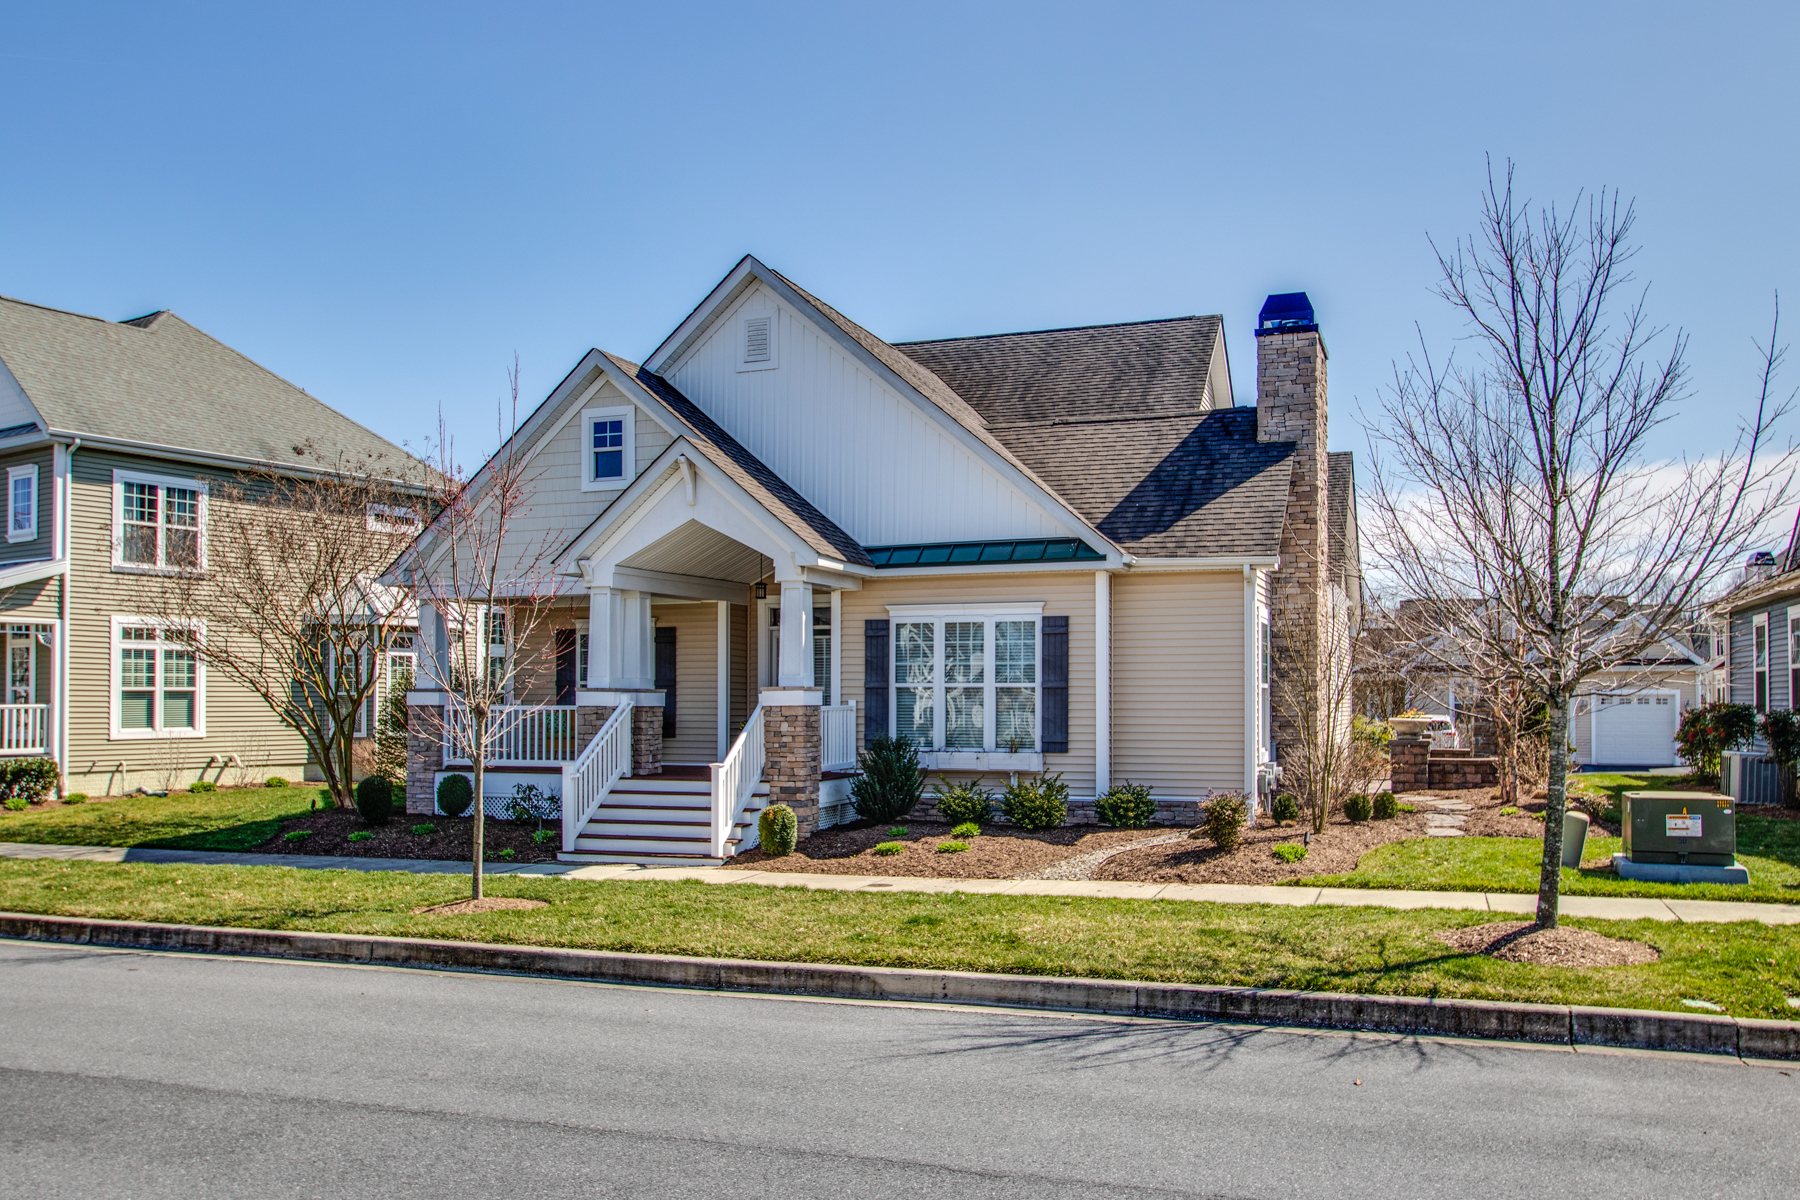 Single Family Homes for Sale at Milton 110 Heritage Boulevard Milton, Delaware 19968 United States